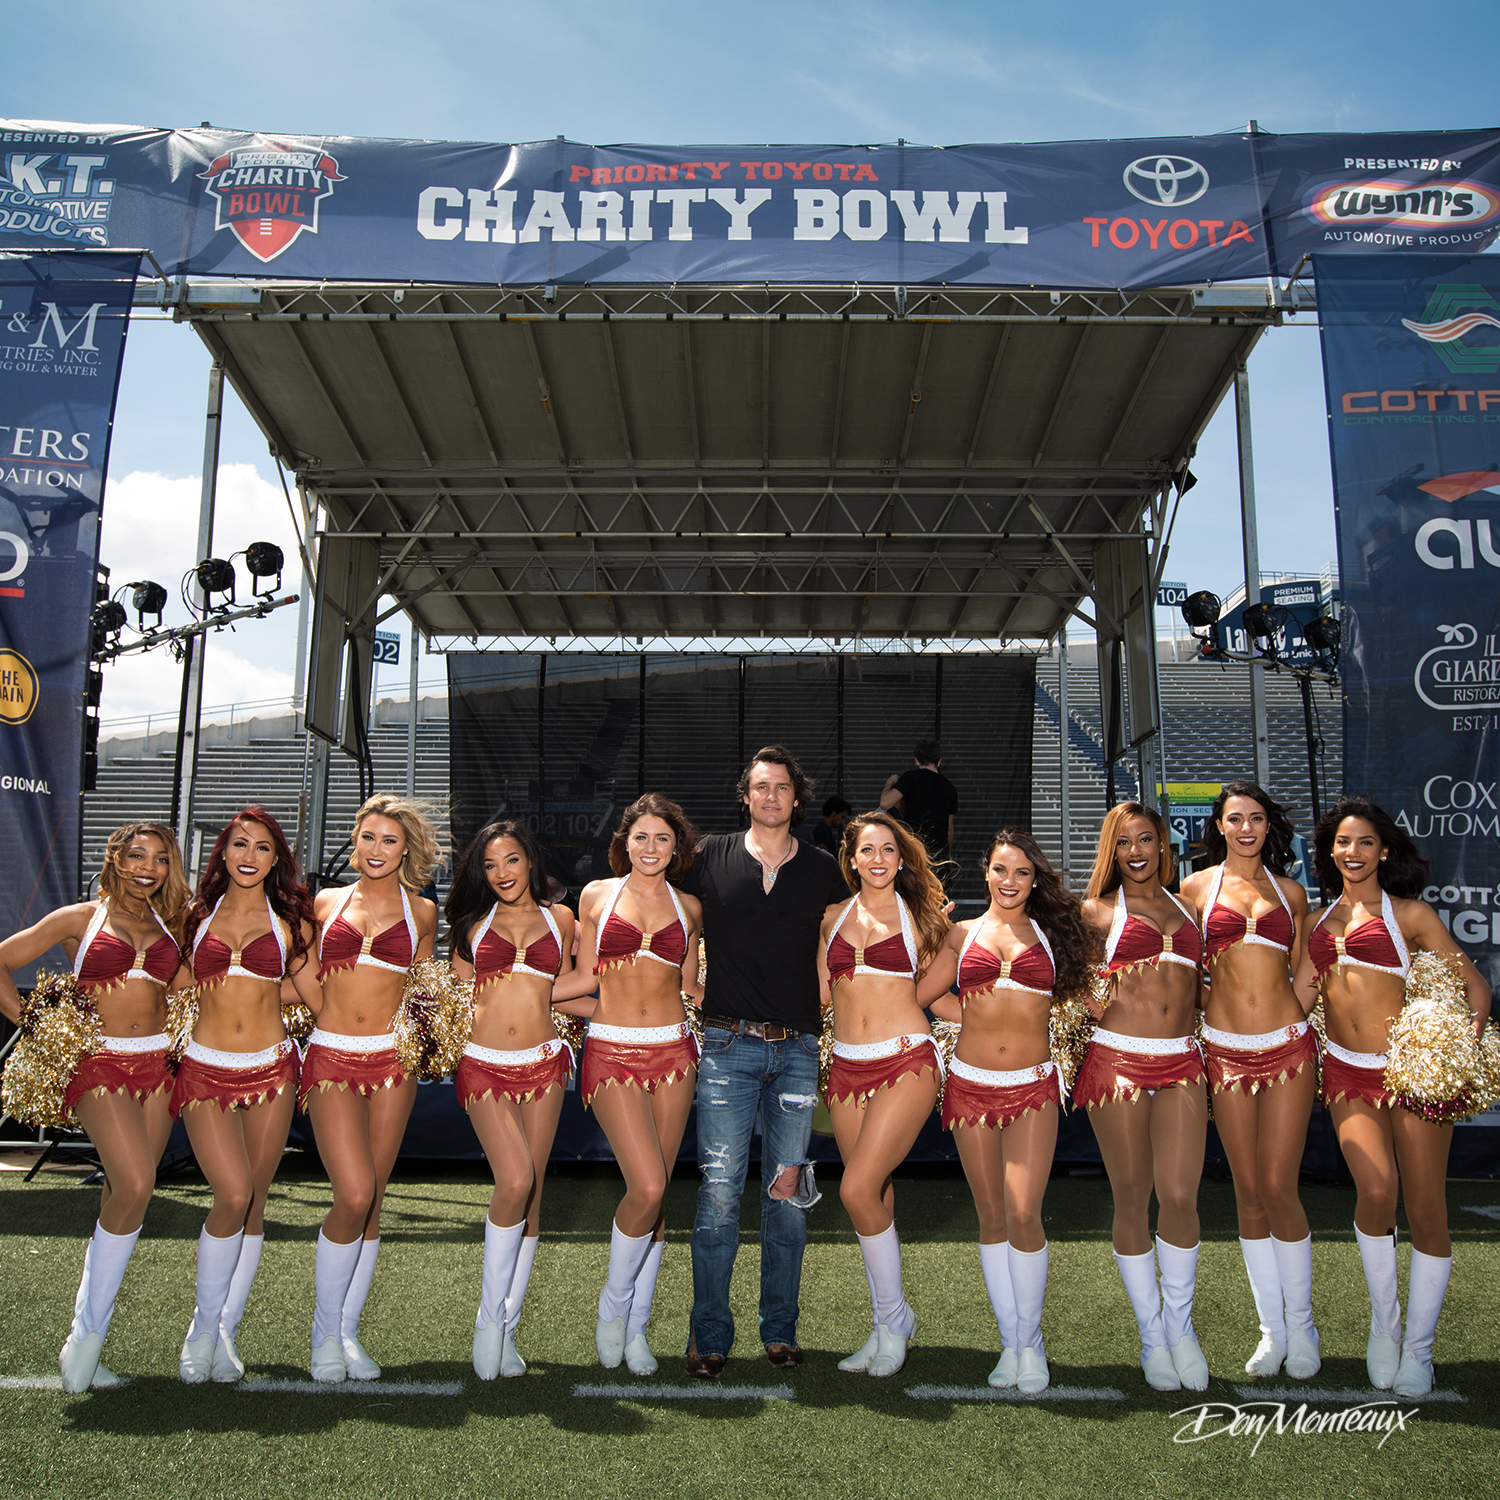 event-photography-priority-toyota-charity-bowl-norfolk-virginia-don-monteaux-photography.jpg